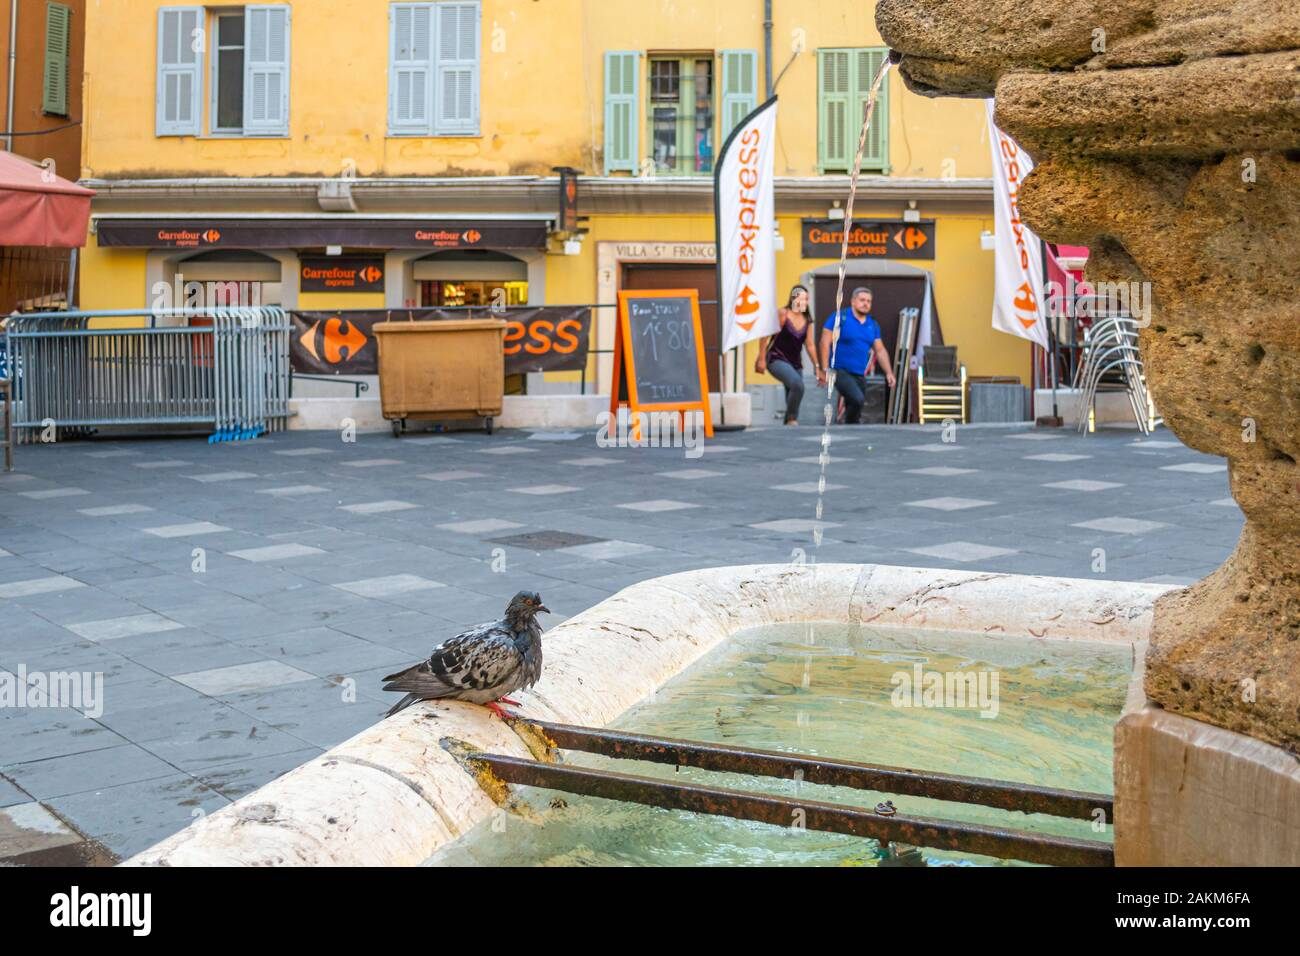 A wet pigeon bathes in a fountain of a small square in the historic Old Town of Vieux Nice, France, on the French Riviera. Stock Photo